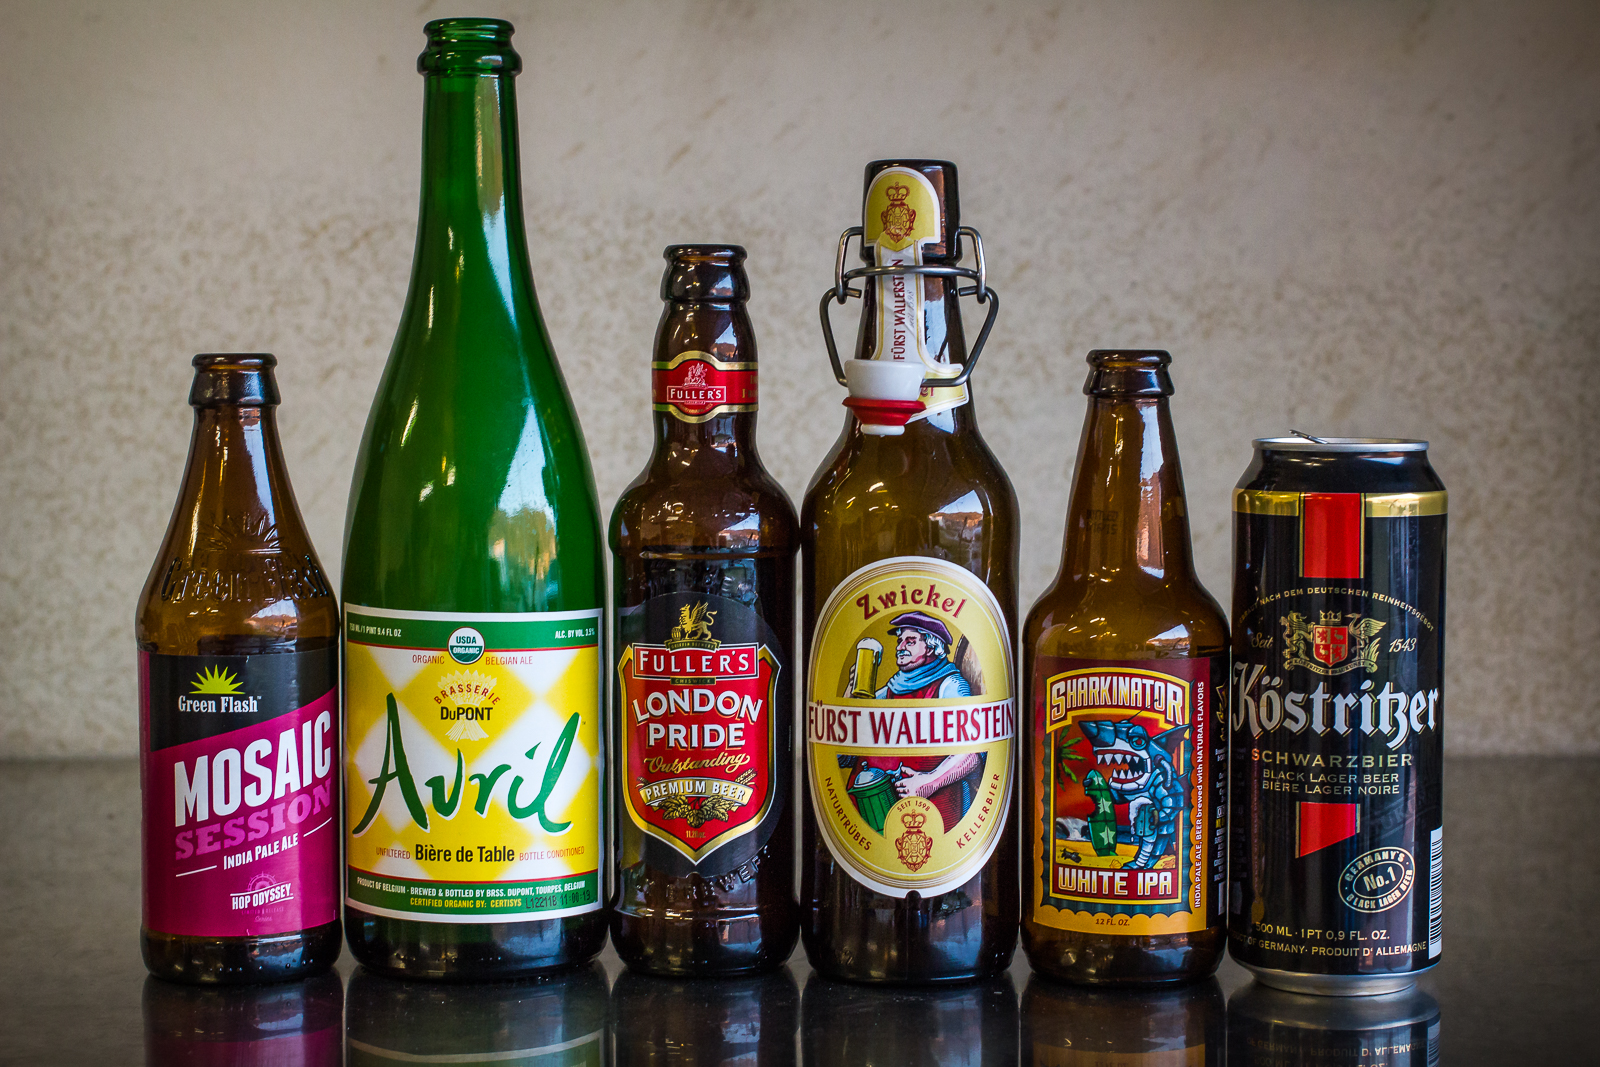 Session-able Beers